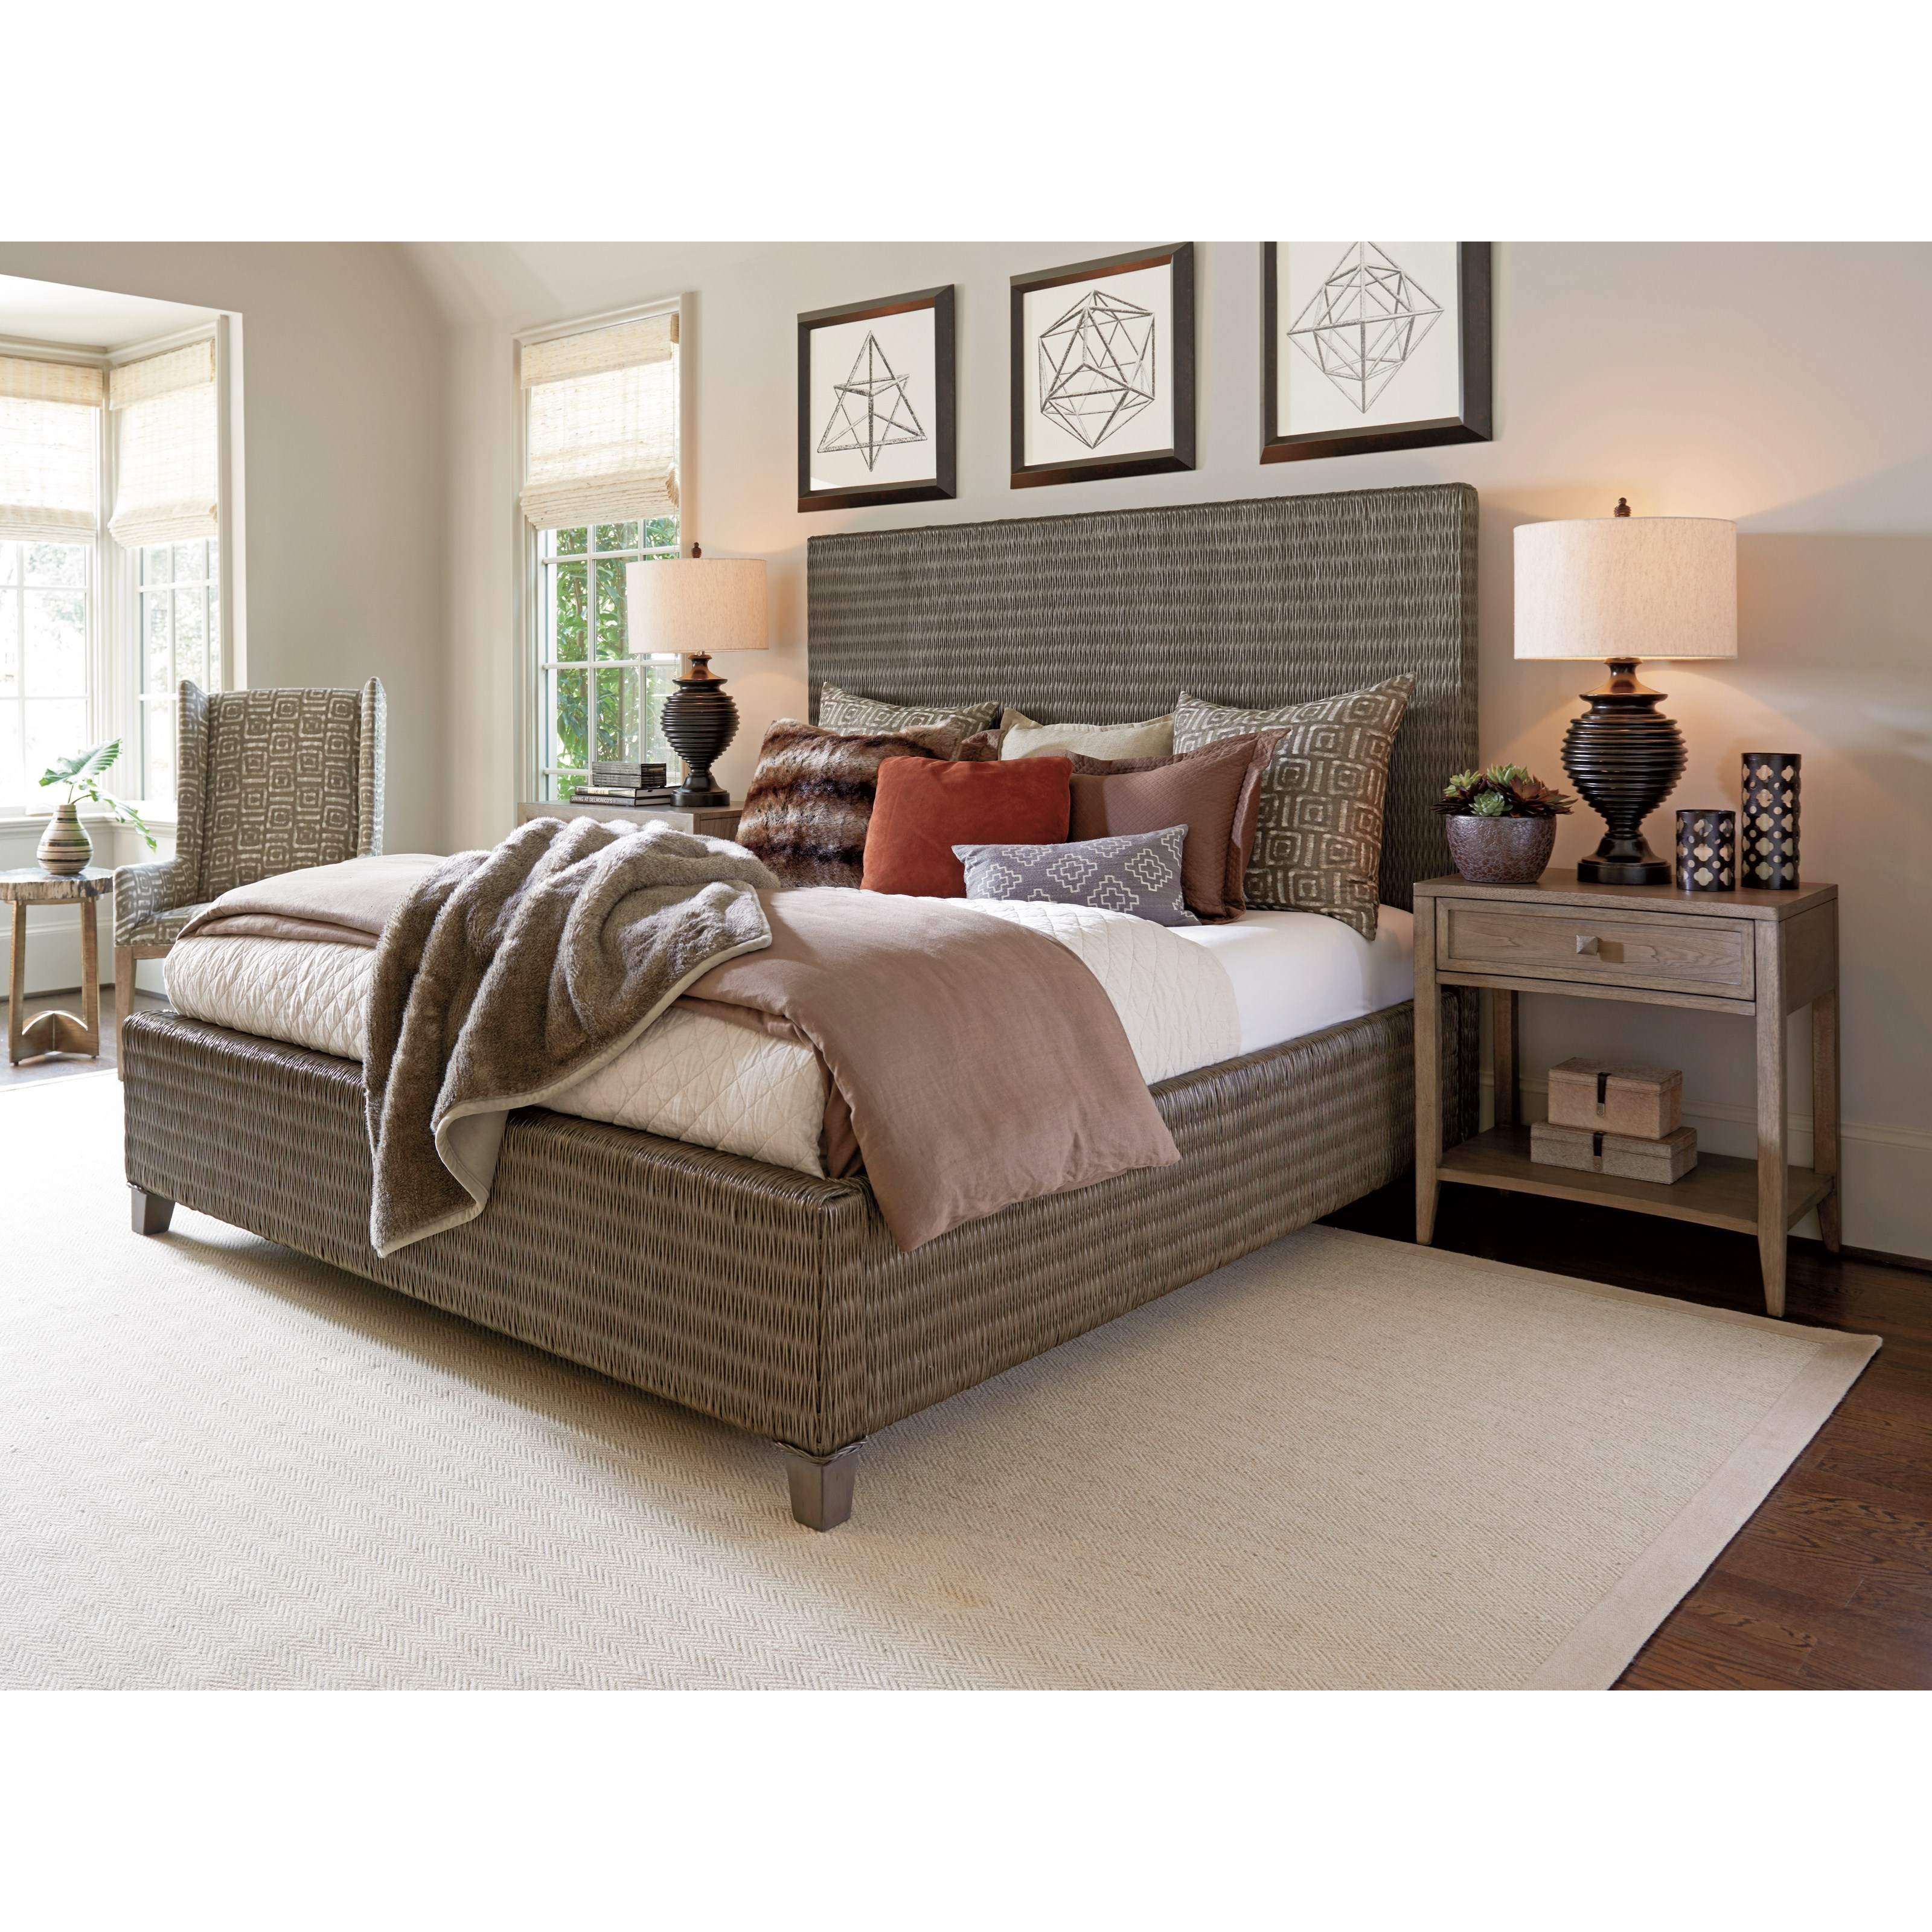 Cypress Point King Bedroom Group by Tommy Bahama Home at Baer's Furniture